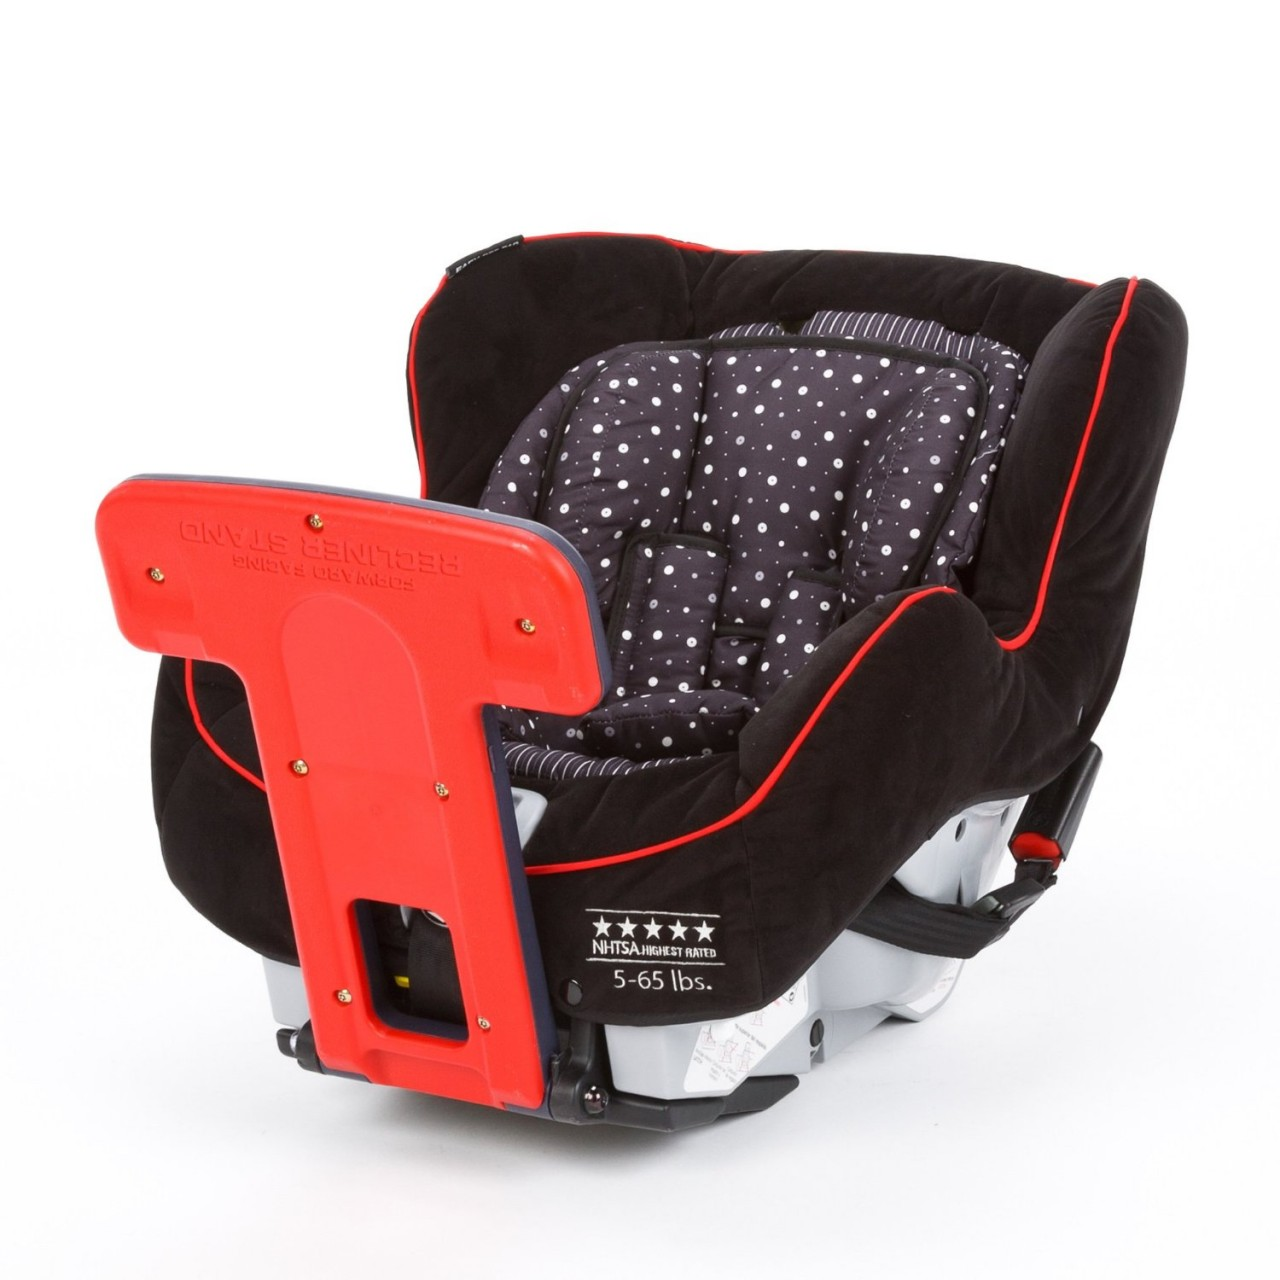 Amazon Deals On Britax Clek The First Years More together with Search intermetro 2016 20case 20metro 20wb257c 20super 20erecta 20bulk 20wine likewise Premier Pet Harness besides Best Prices Evenflo Chase Dlx Harness Booster Seat Nashville also First Years 3 In 1 Car Seat. on first years true fit premier car seat